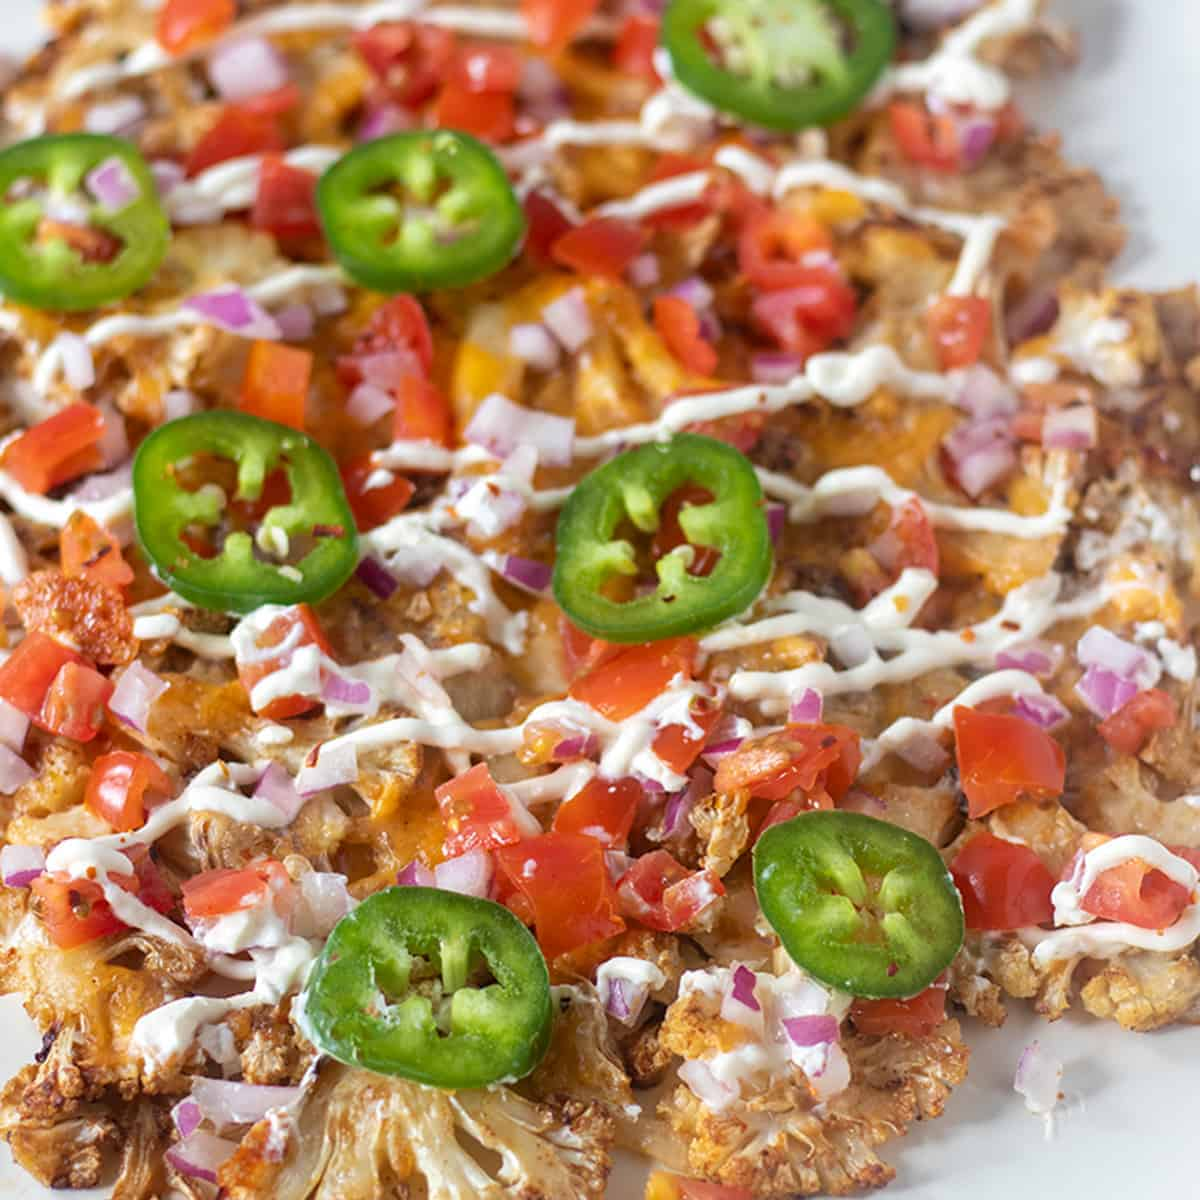 Cauliflower nachos topped with melted cheese, tomatos, onion jalapeno and sour cream